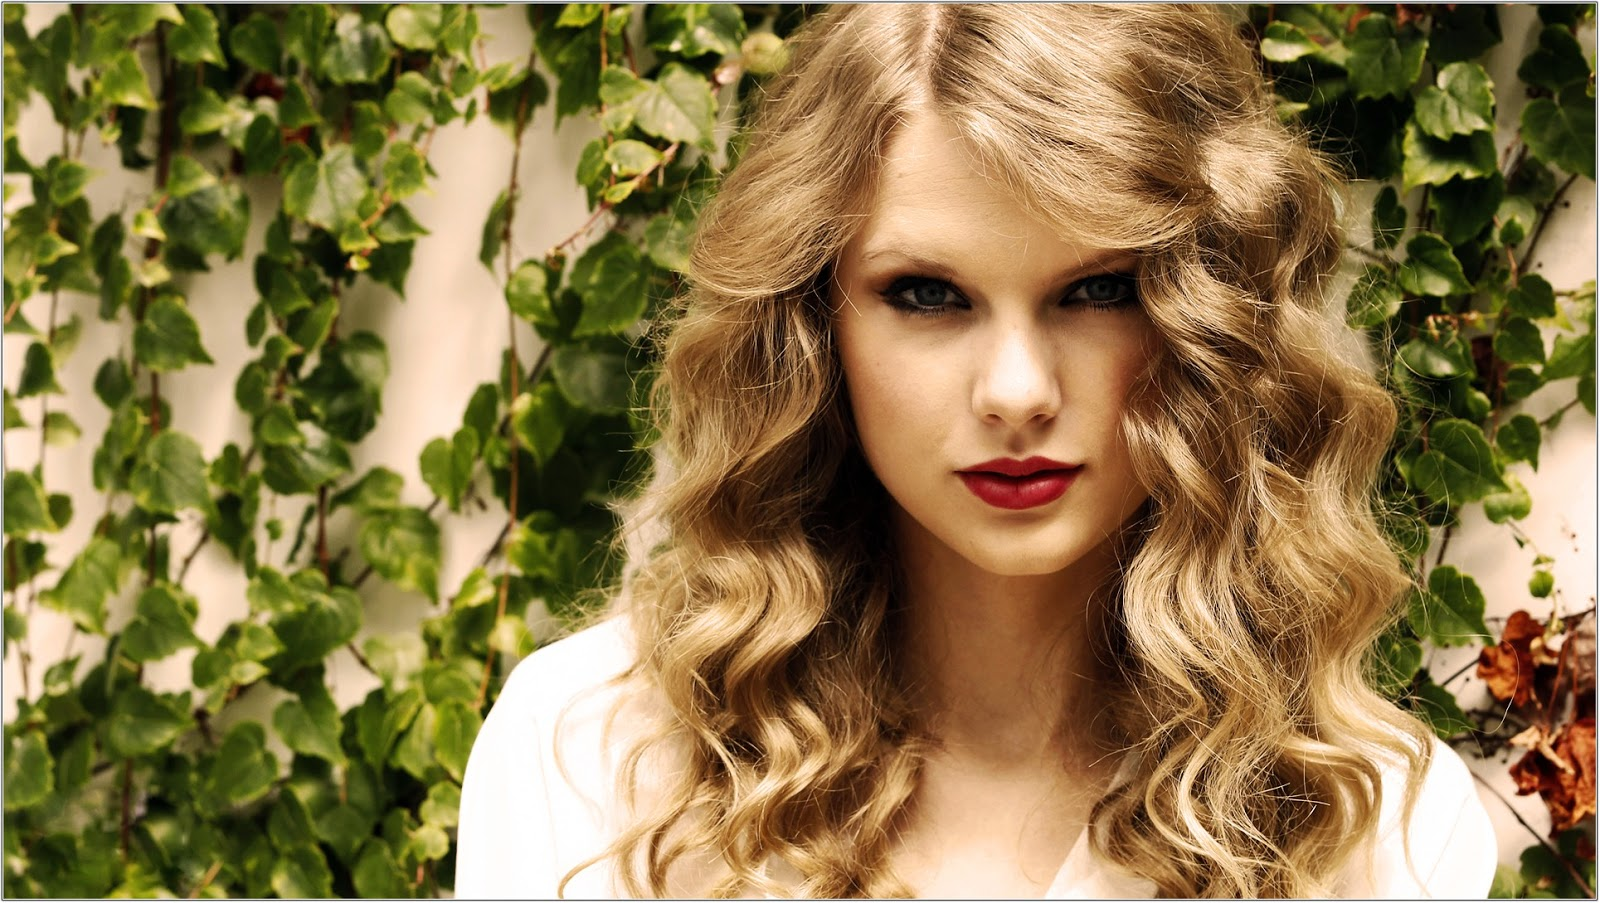 Taylor Swift Beautiful Images: Taylor Swift Wallpaper HD Beautiful Images Collection